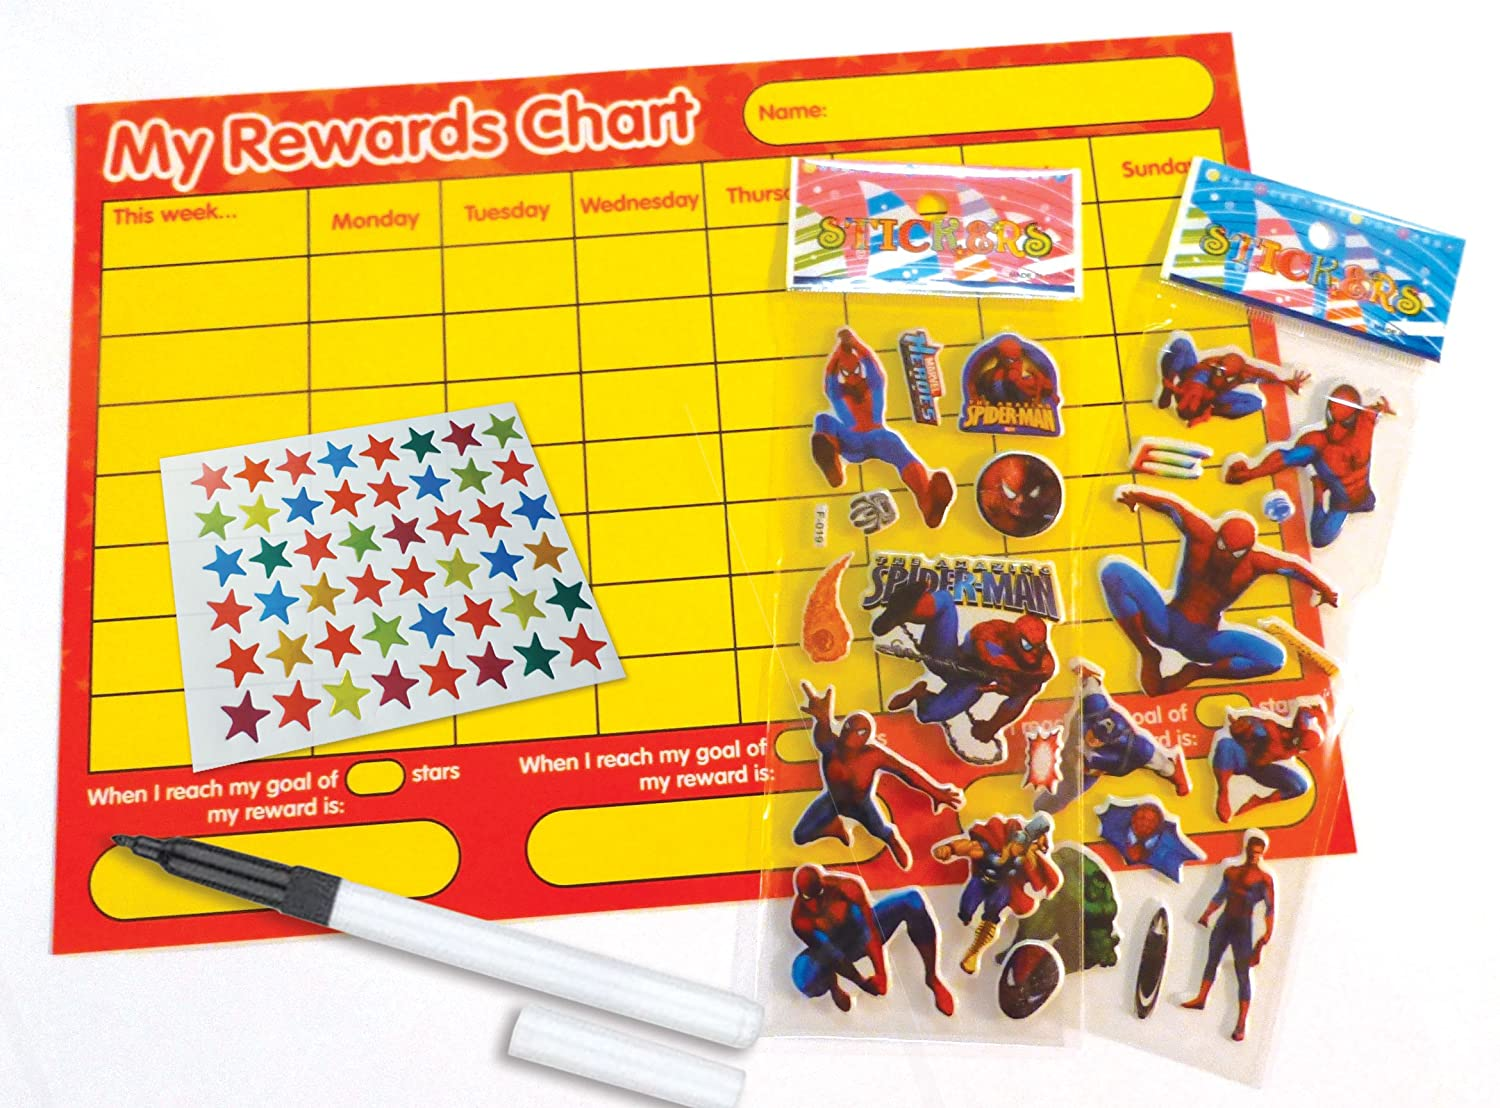 re usable reward chart including star stickers spiderman re usable reward chart including star stickers spiderman stickers and pen red yellow design amazon co uk toys games